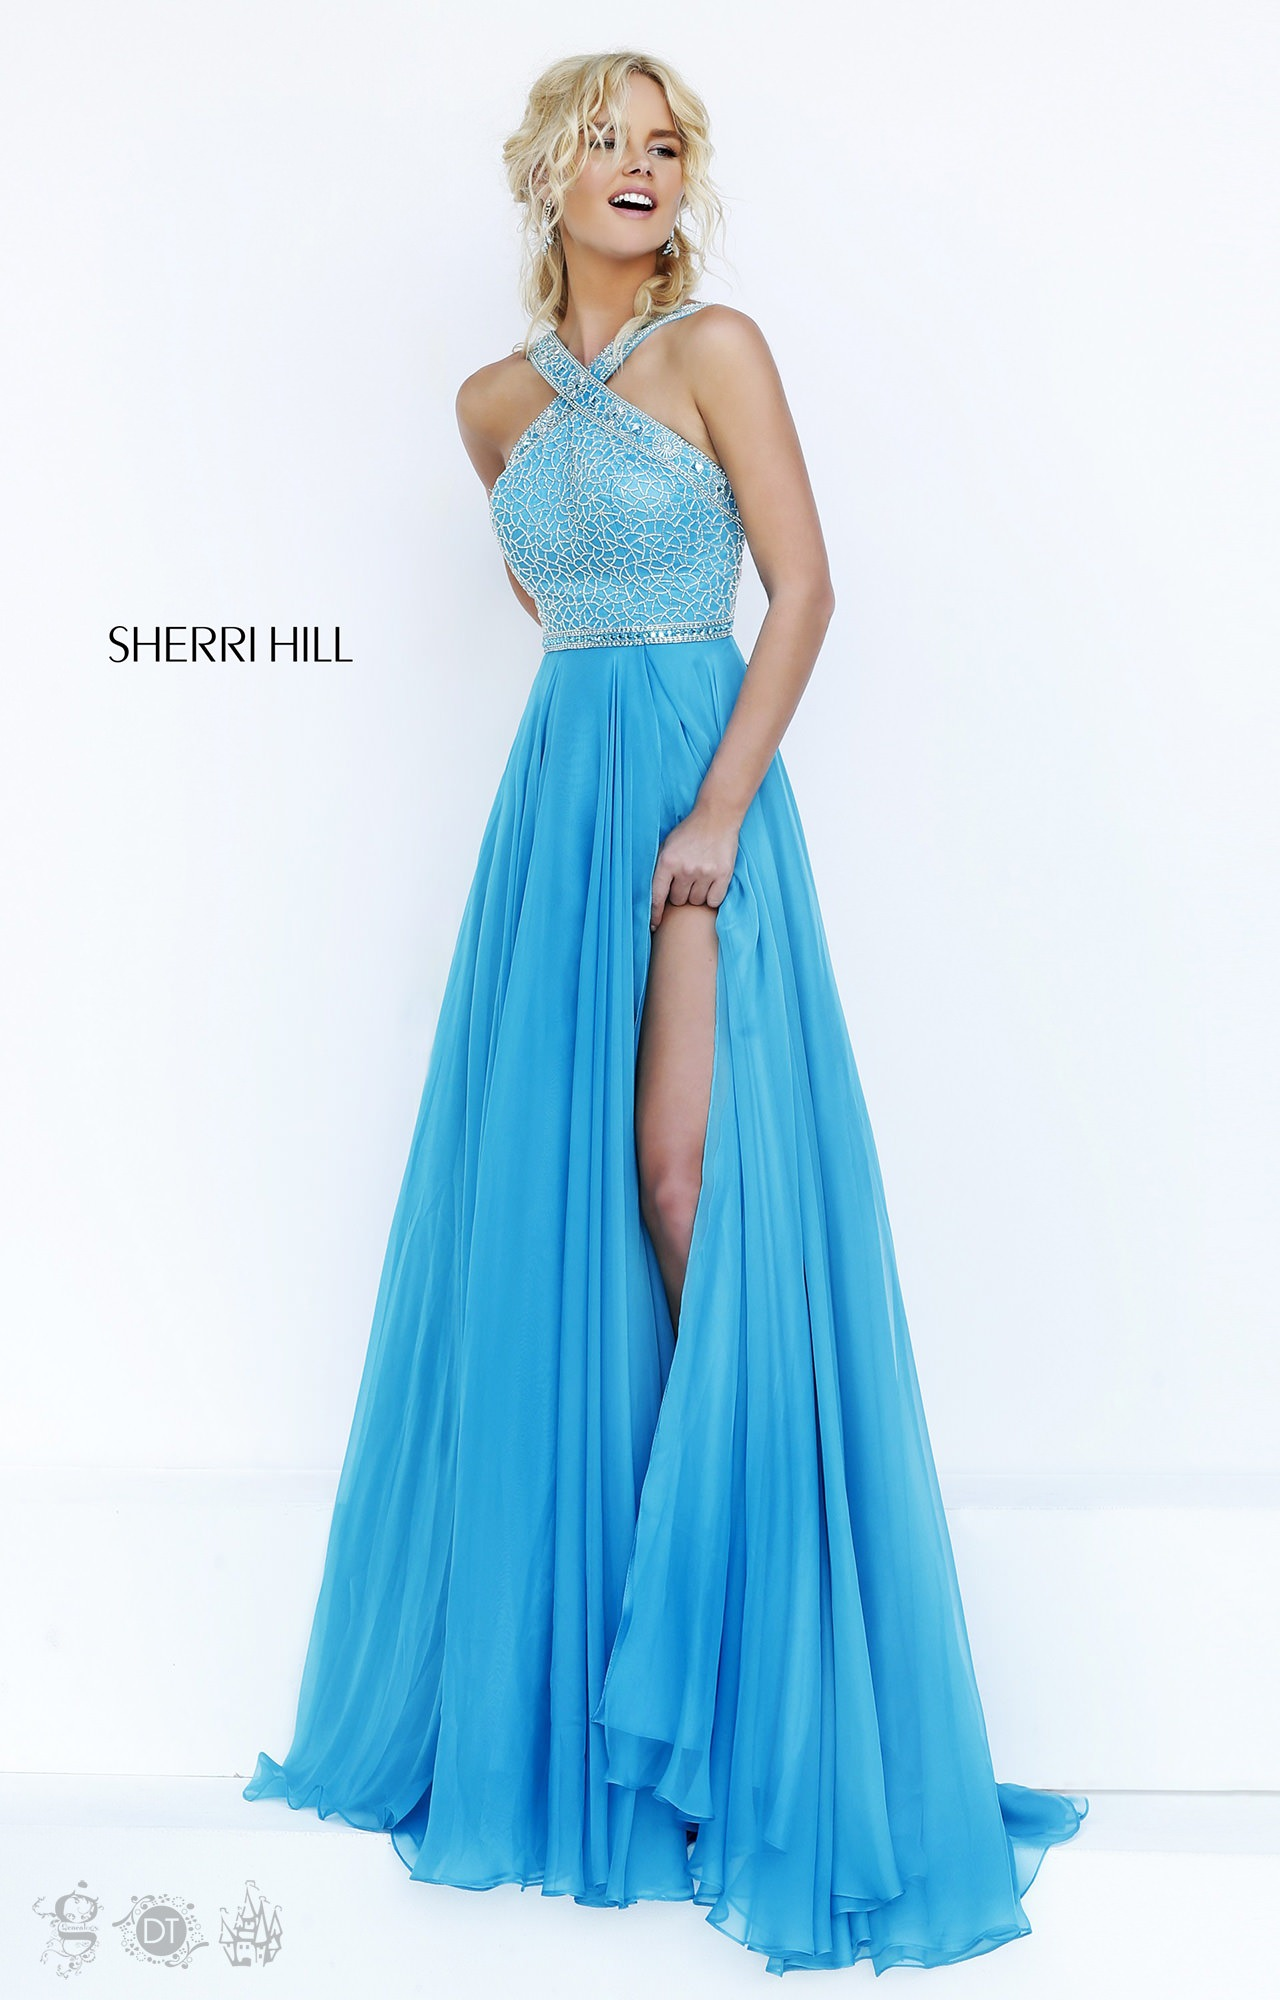 Sherri Hill 11319 - The Carrie Diaries Gown Prom Dress